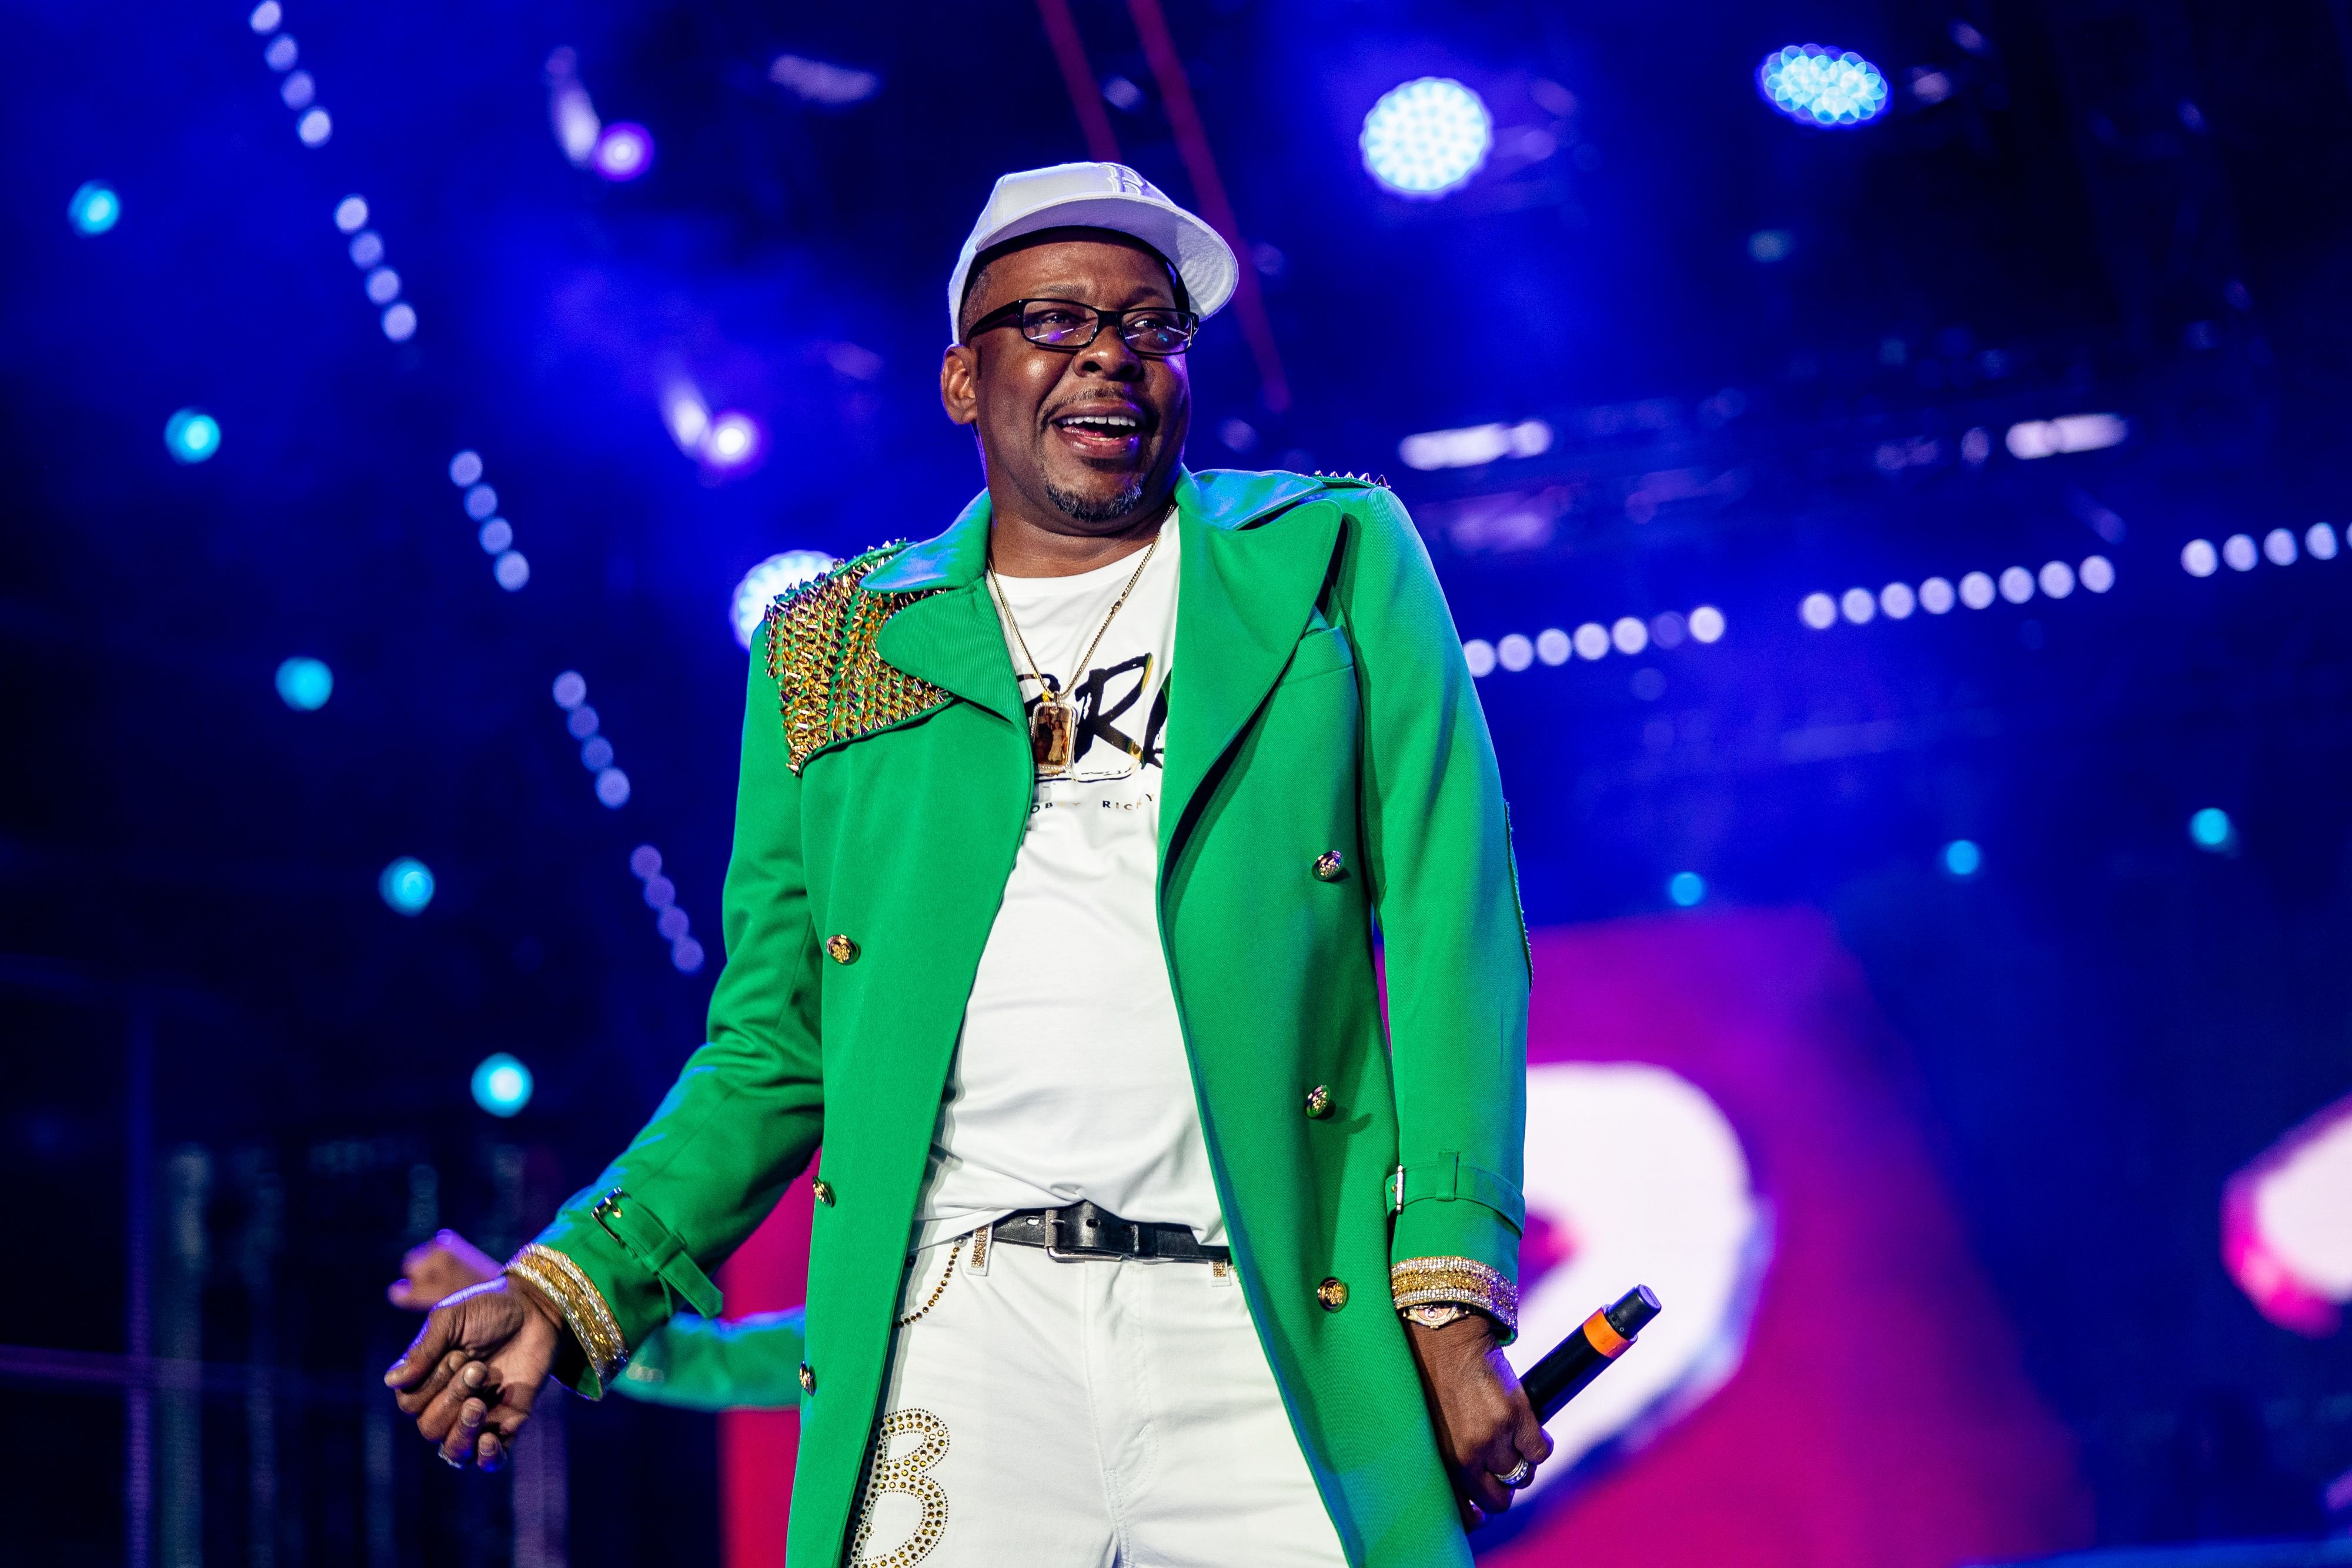 Bobby Brown performs during the 25th Essence Festival on July 05, 2019, in New Orleans, Louisiana | Photo: Josh Brasted/FilmMagic/Getty Images